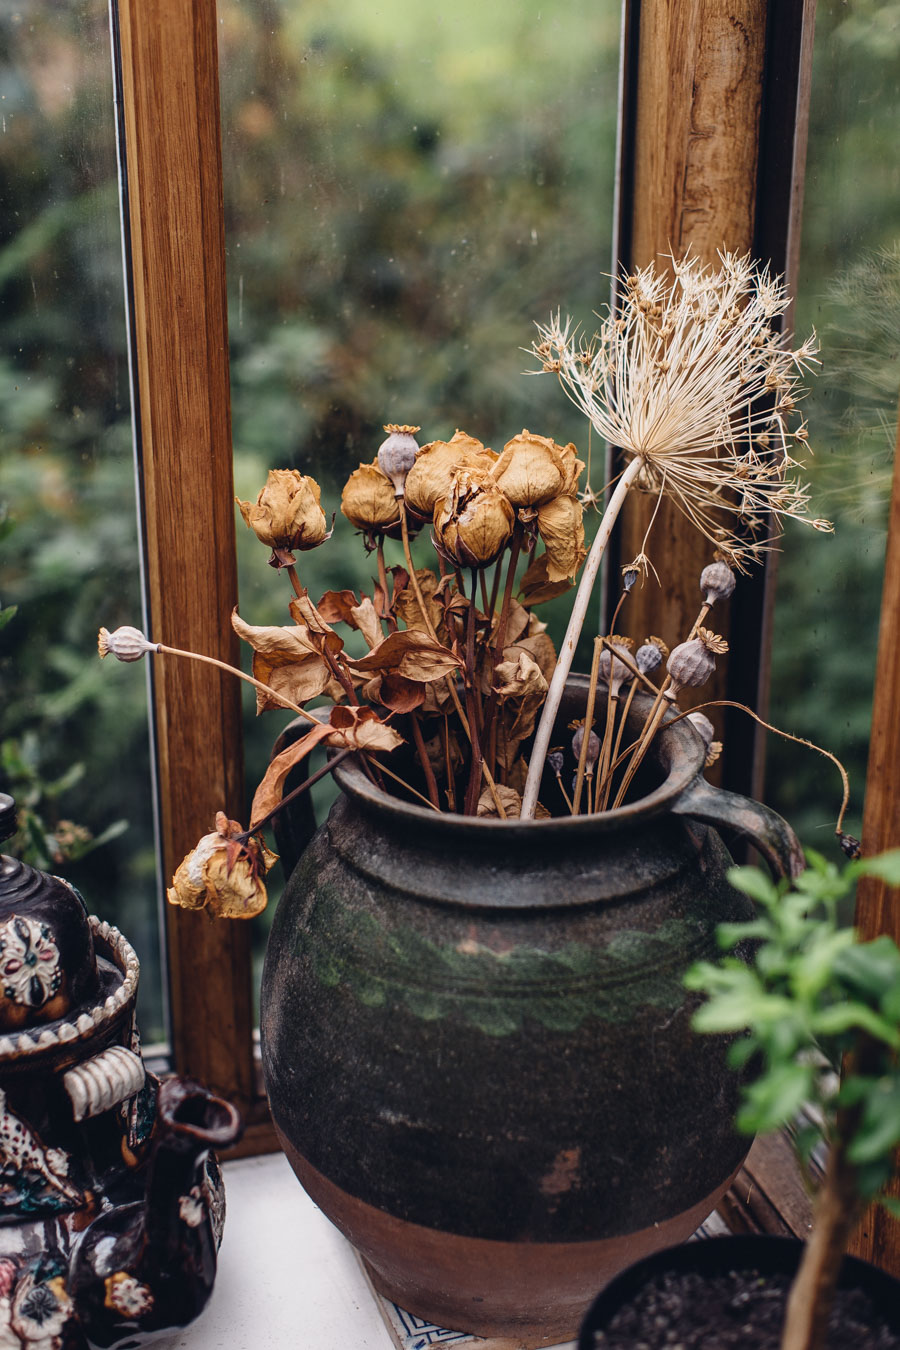 Dried seed heads